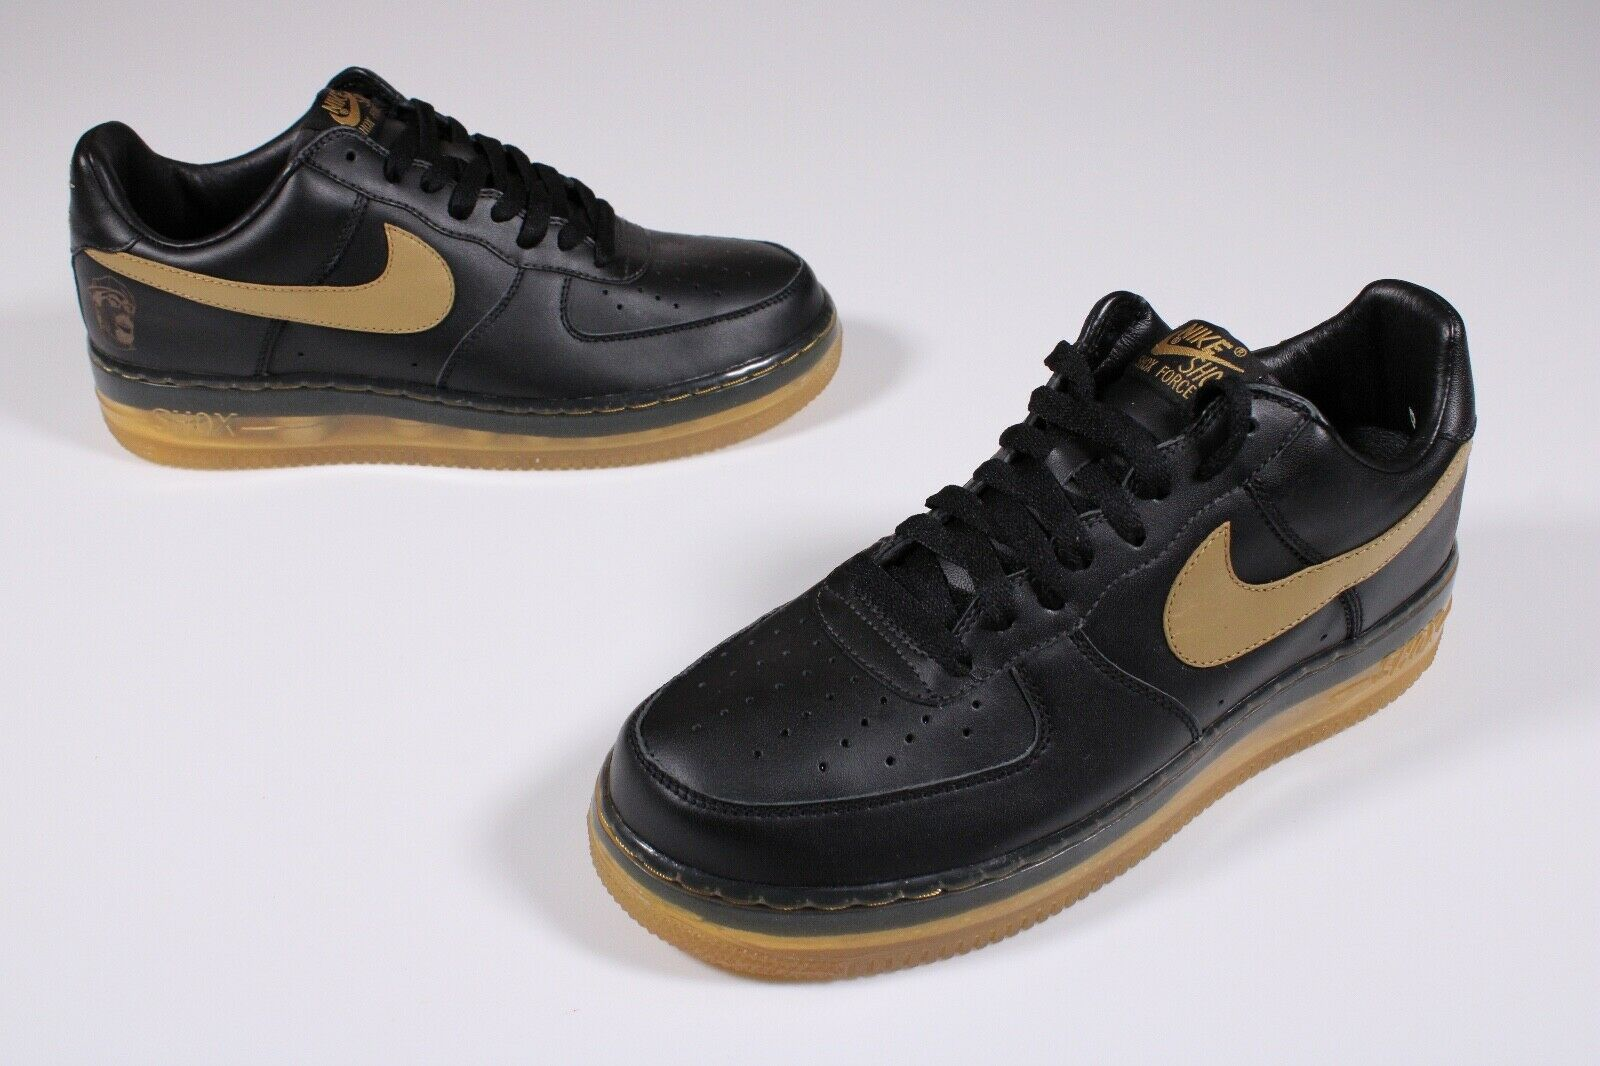 Nike Shox Air Force 1